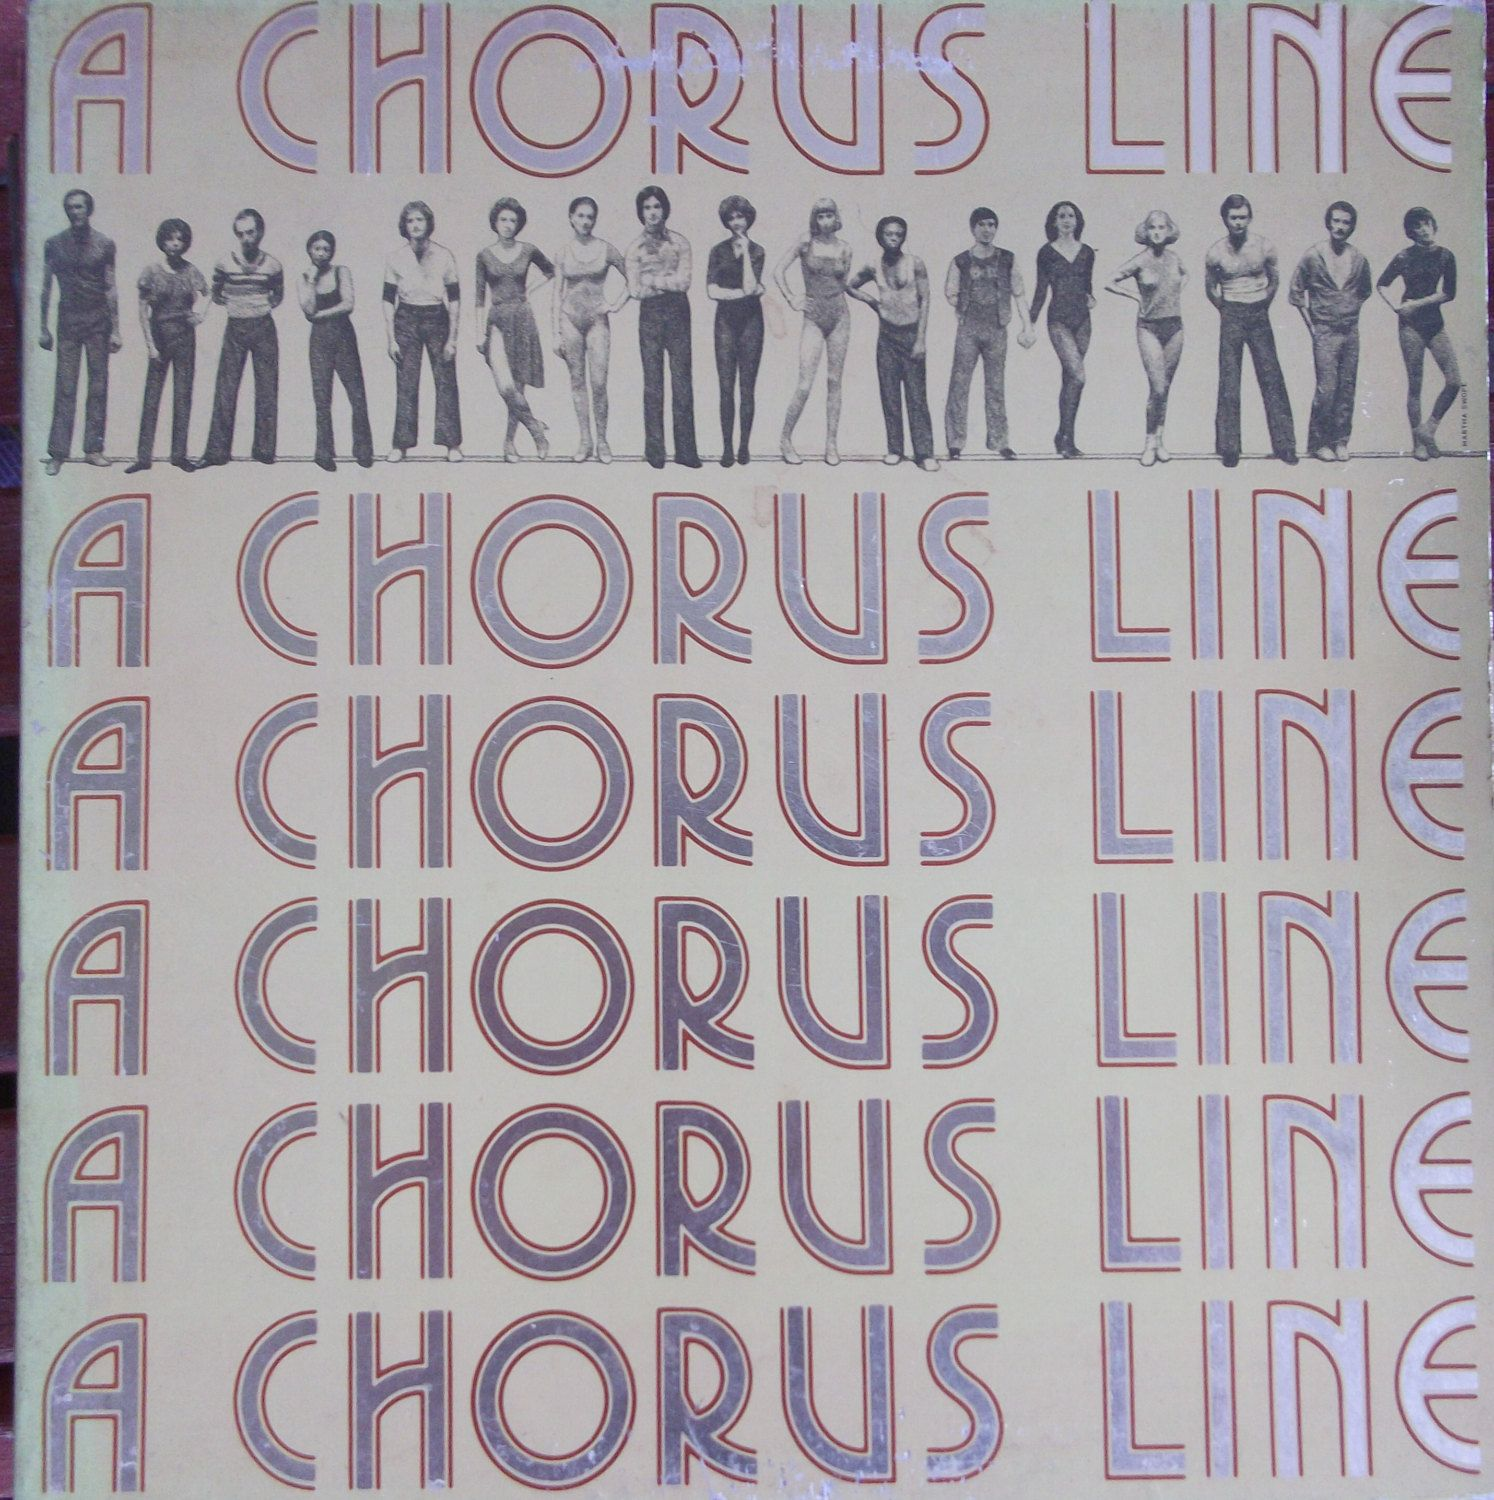 A Chorus Line, Original Cast Recording, Vintage Record Album, Vinyl LP, Marvin Hamlisch, Broadway Musical, New York Shakespeare Festival by VintageCoolRecords on Etsy